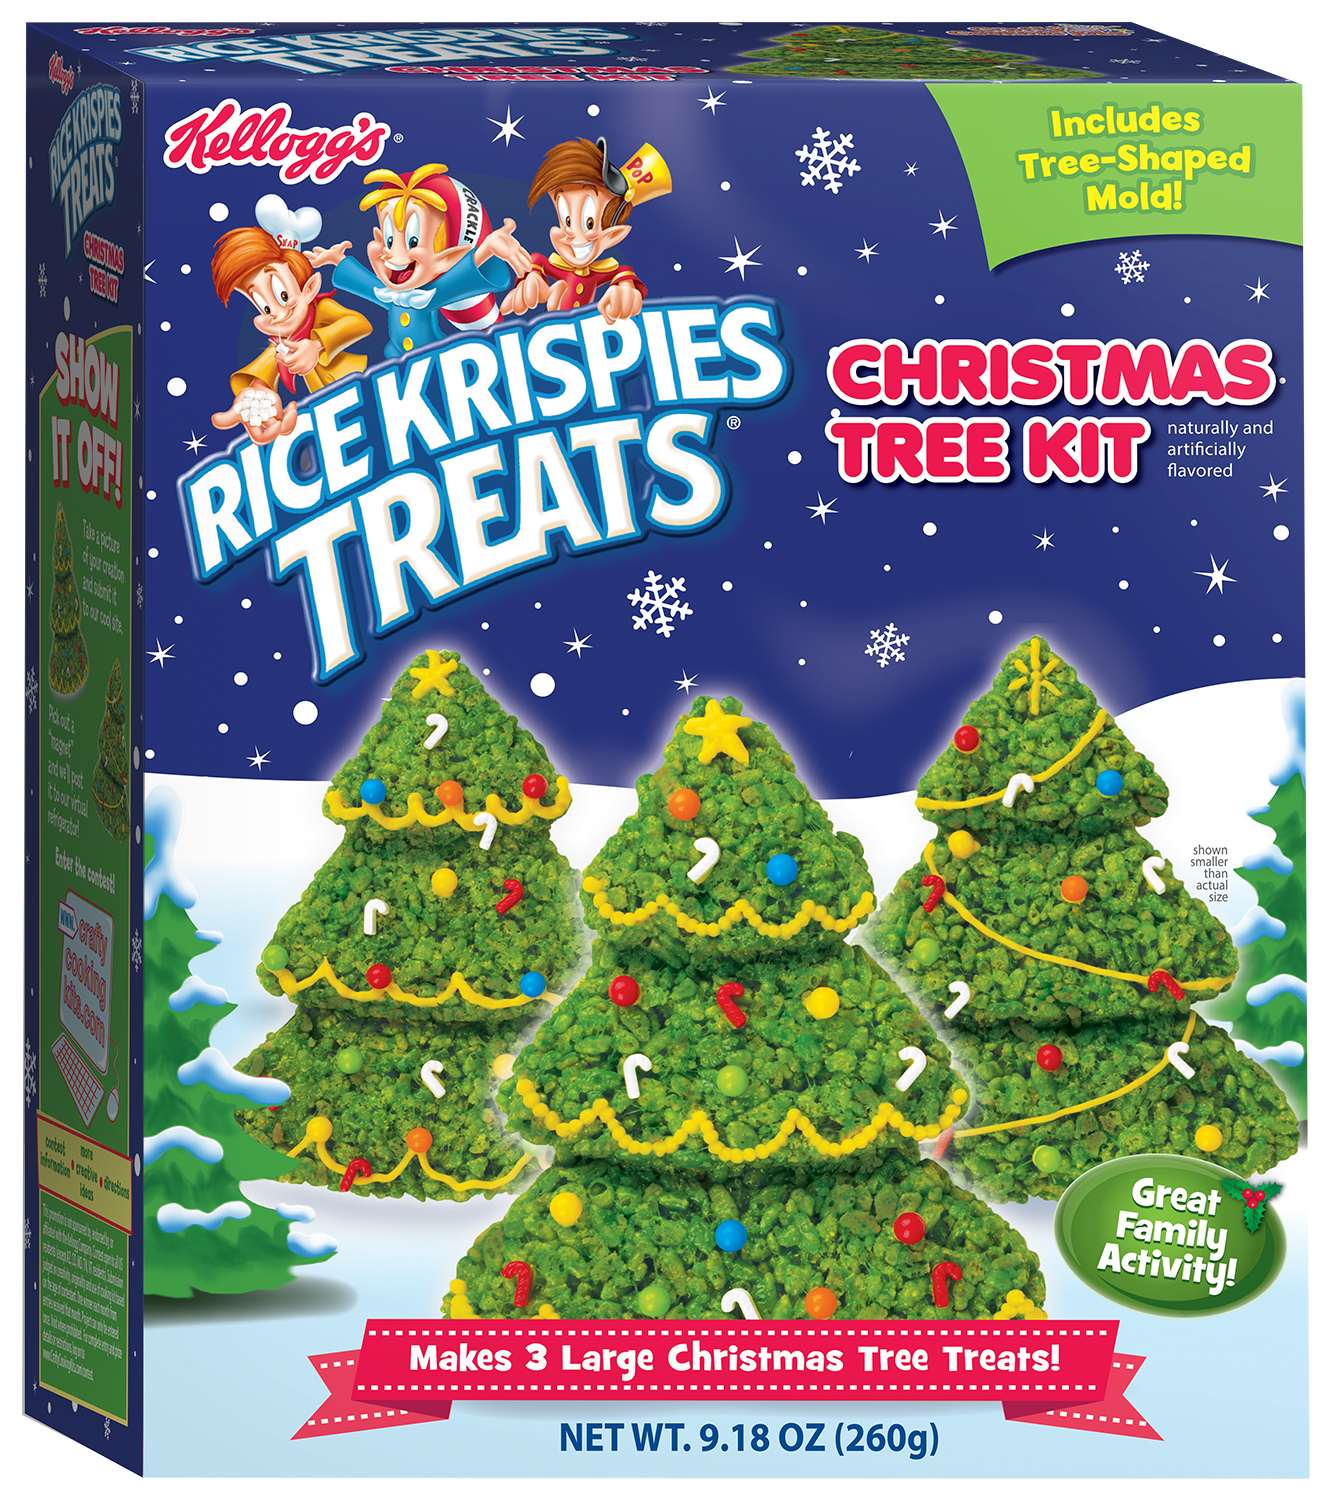 kelloggs rice krispies treats christmas trees kit